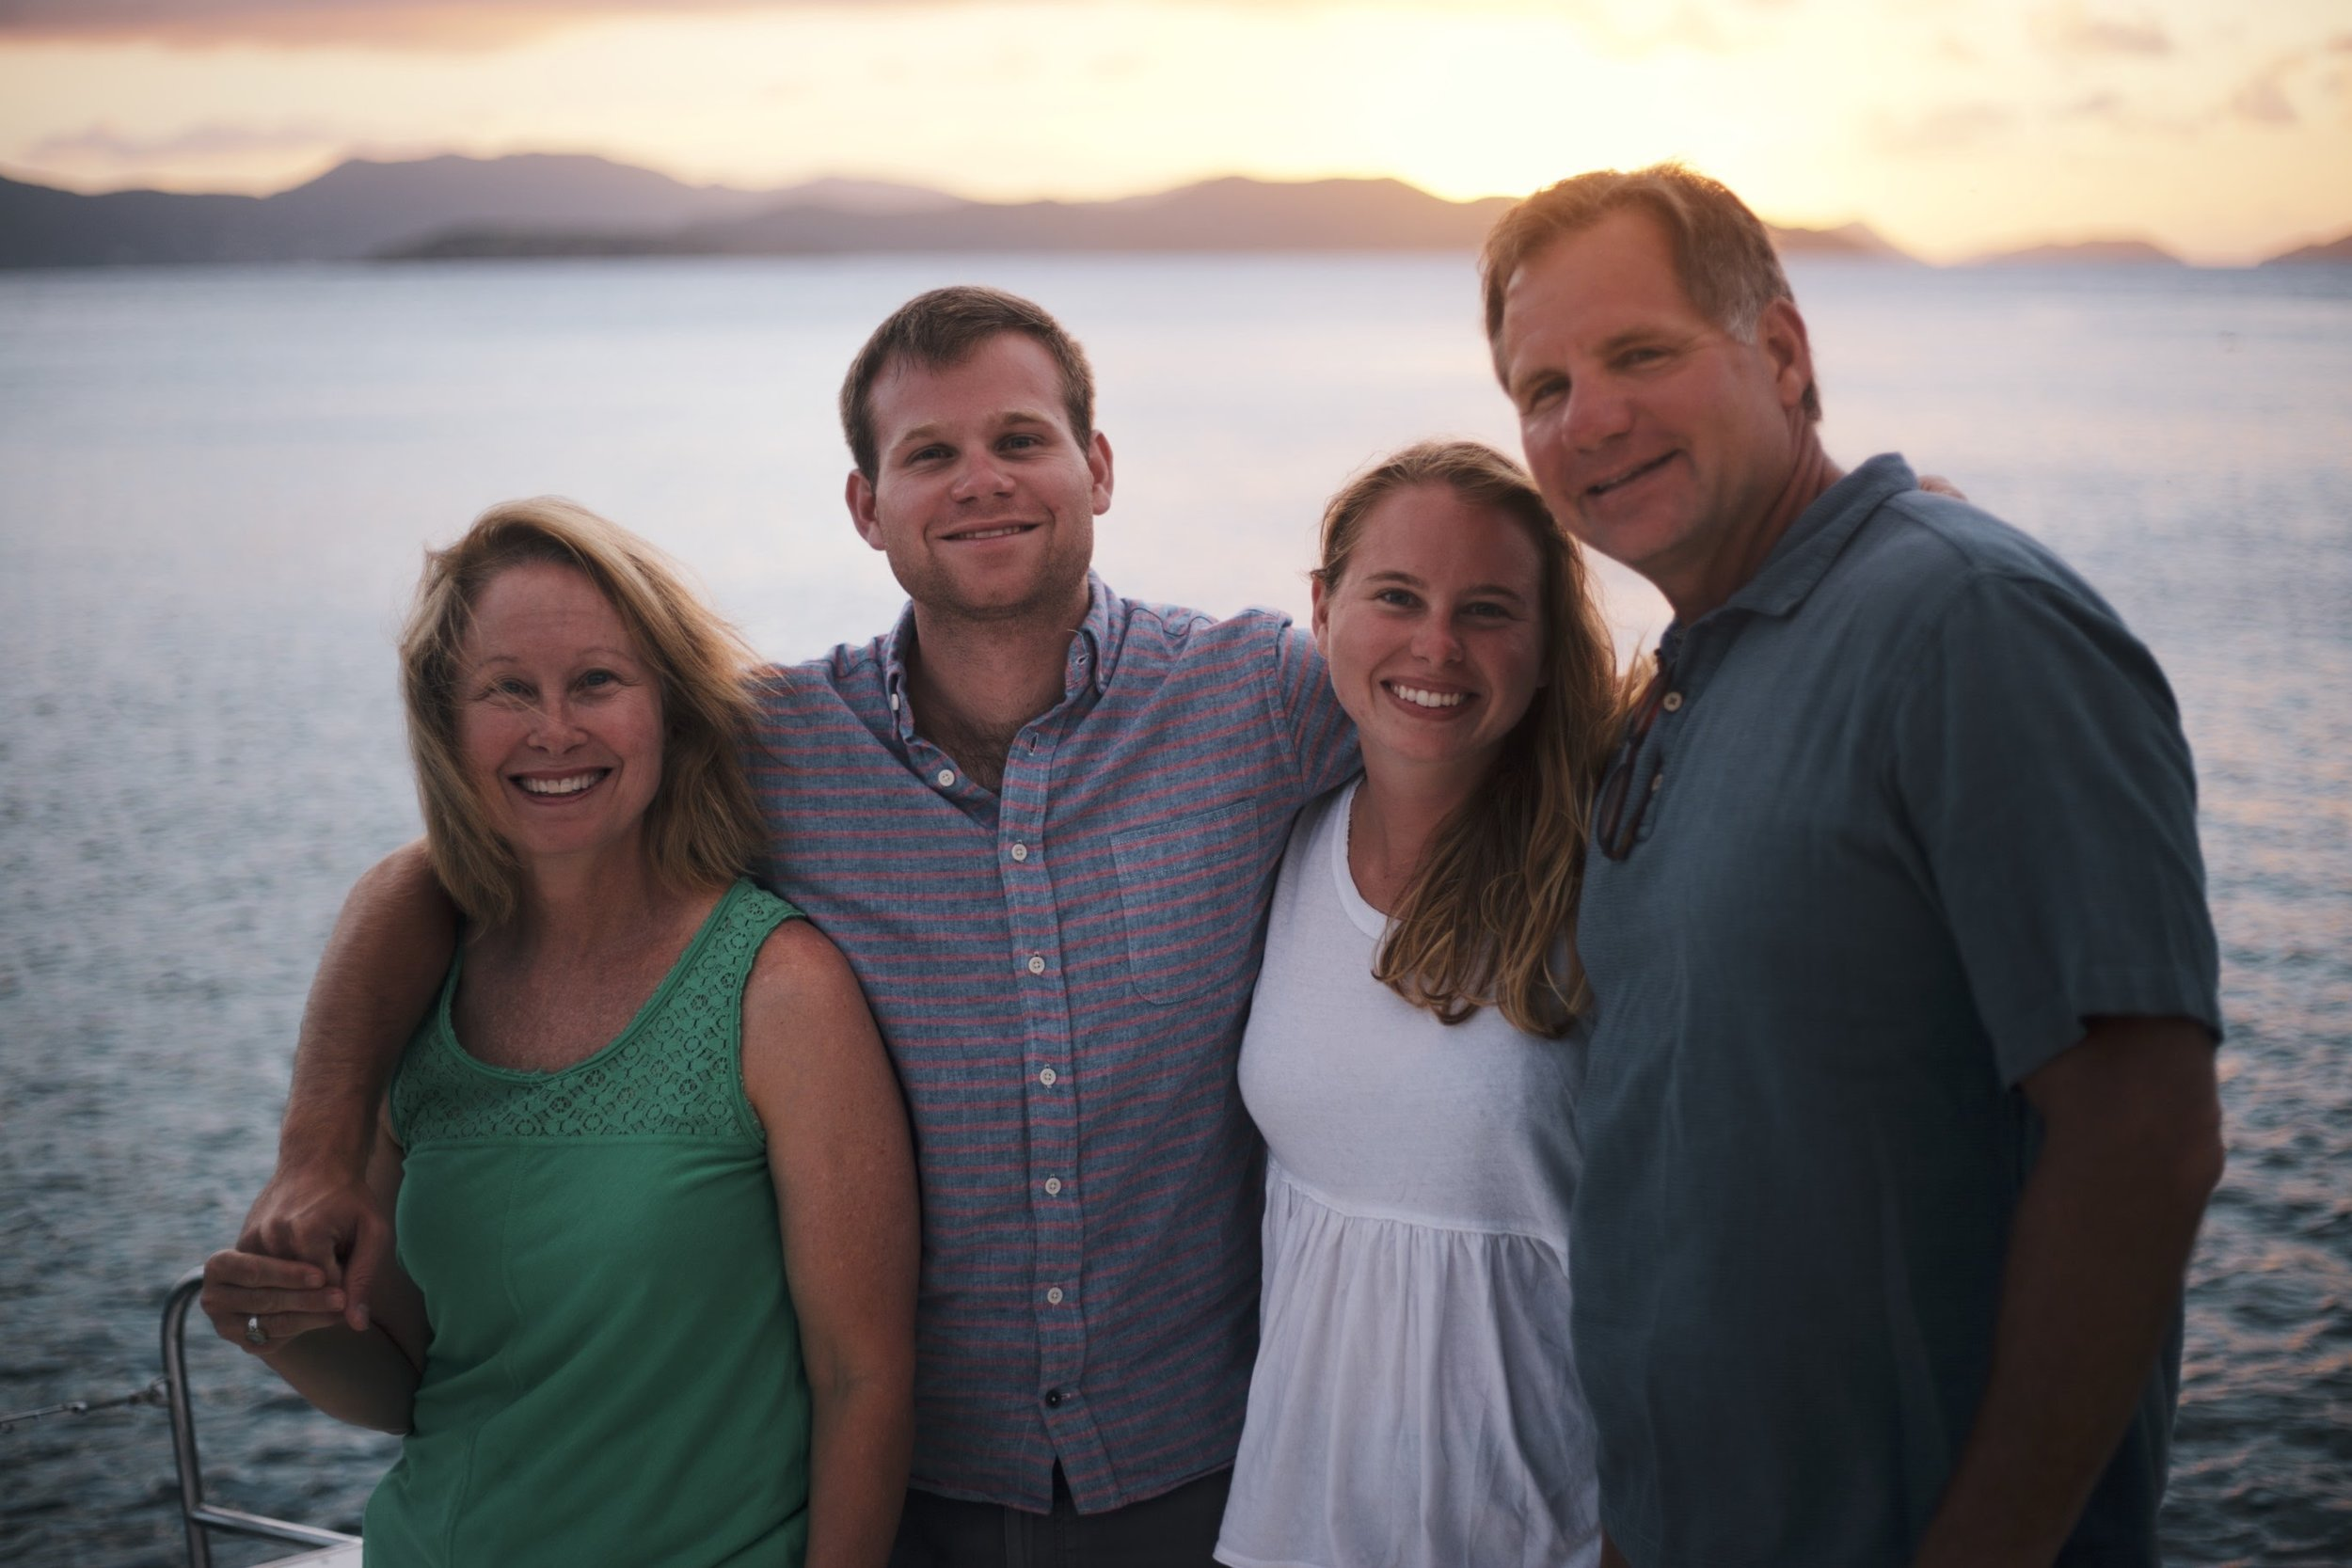 One of only two family pictures we got on the trip thanks to Cameron.